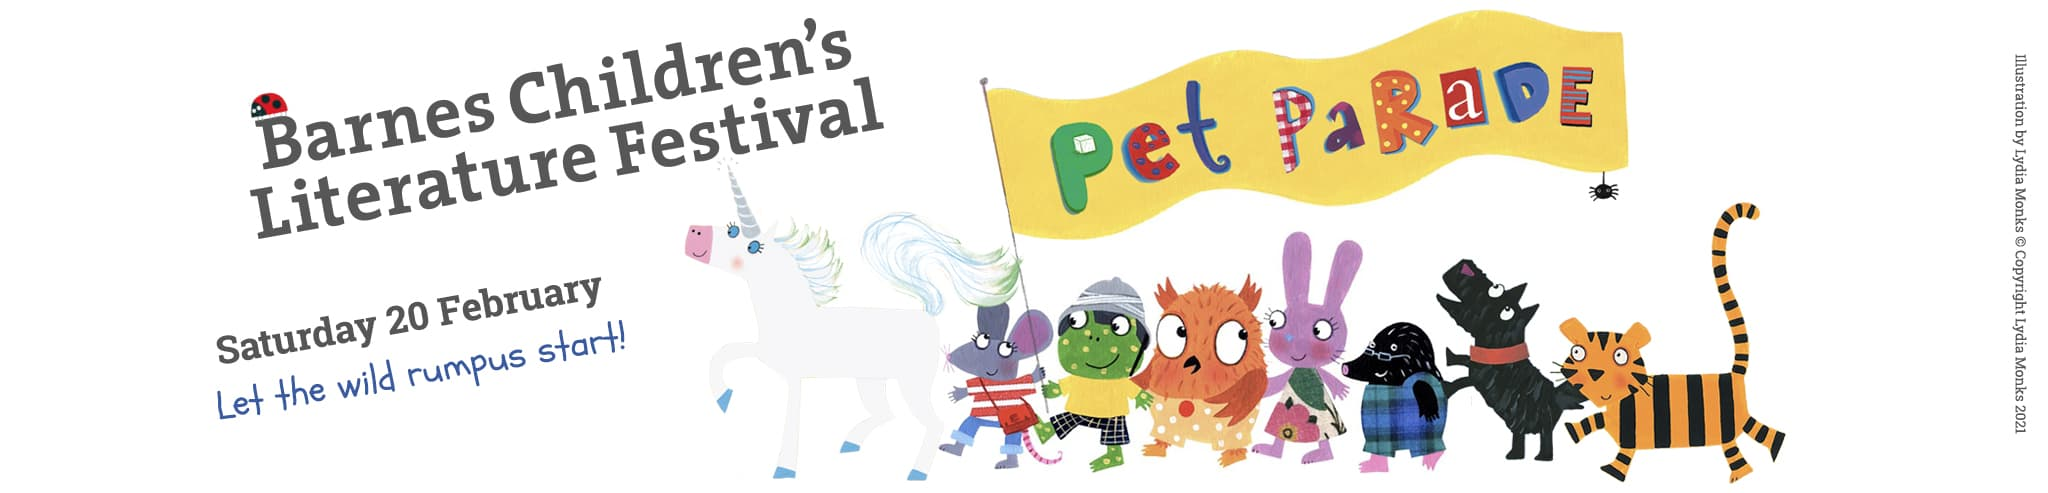 Barnes Pet parade logo with Lydia monks animals